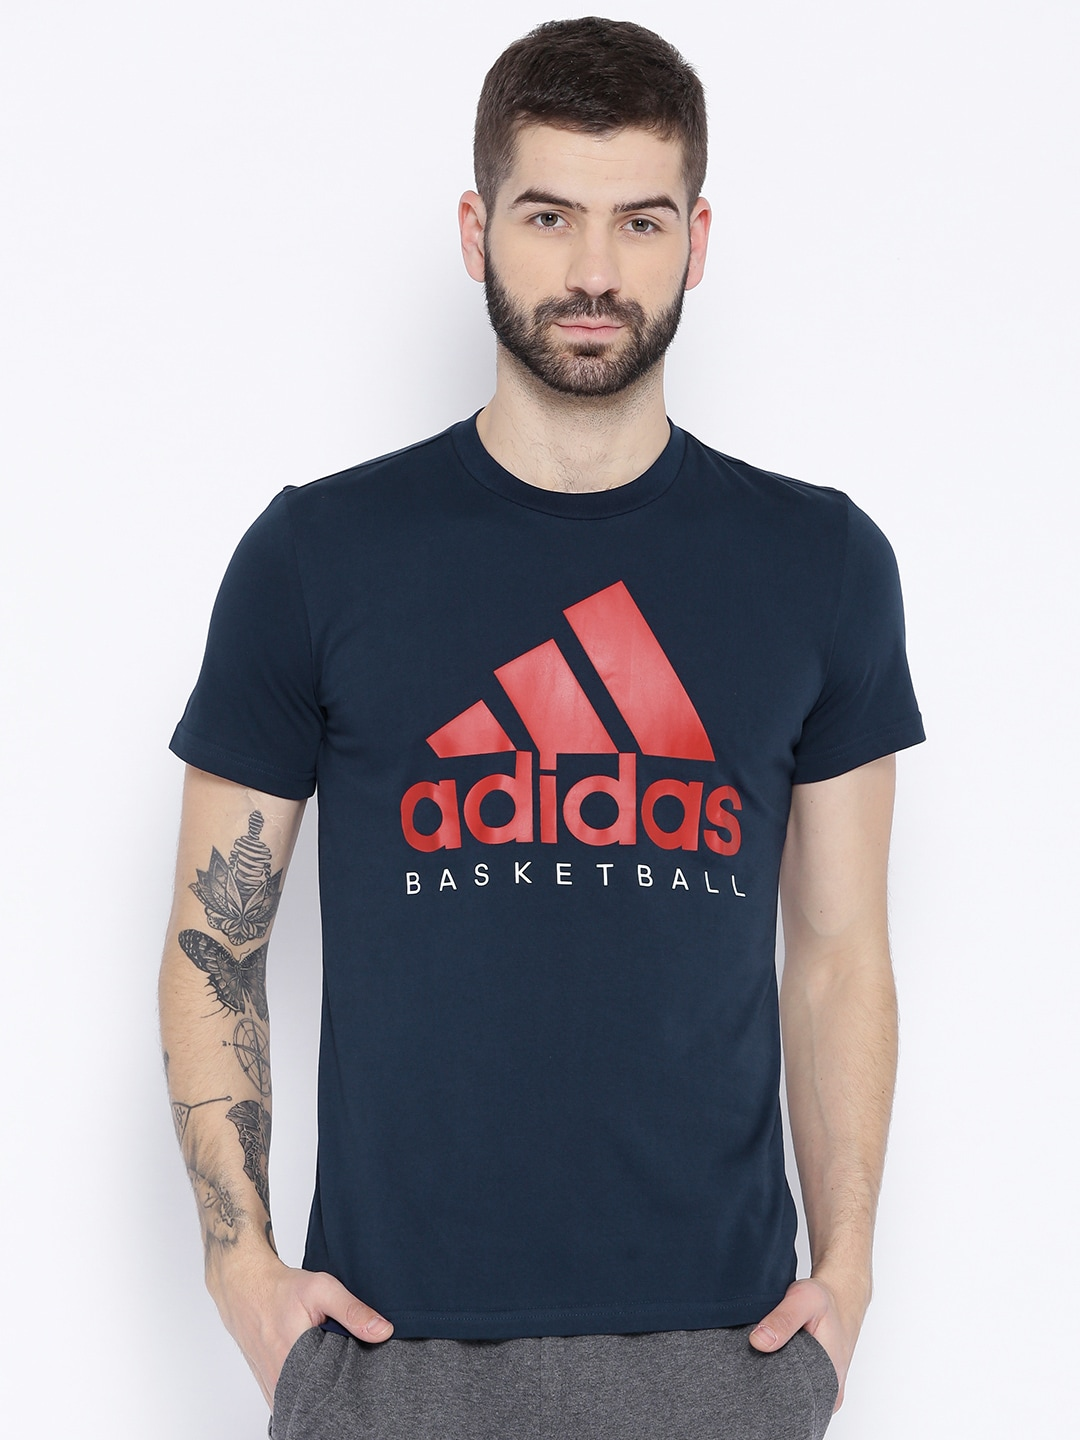 best sneakers 536cf 9a4fd Tshirt Offers Tshirts - Buy Tshirt Offers Tshirts online in India